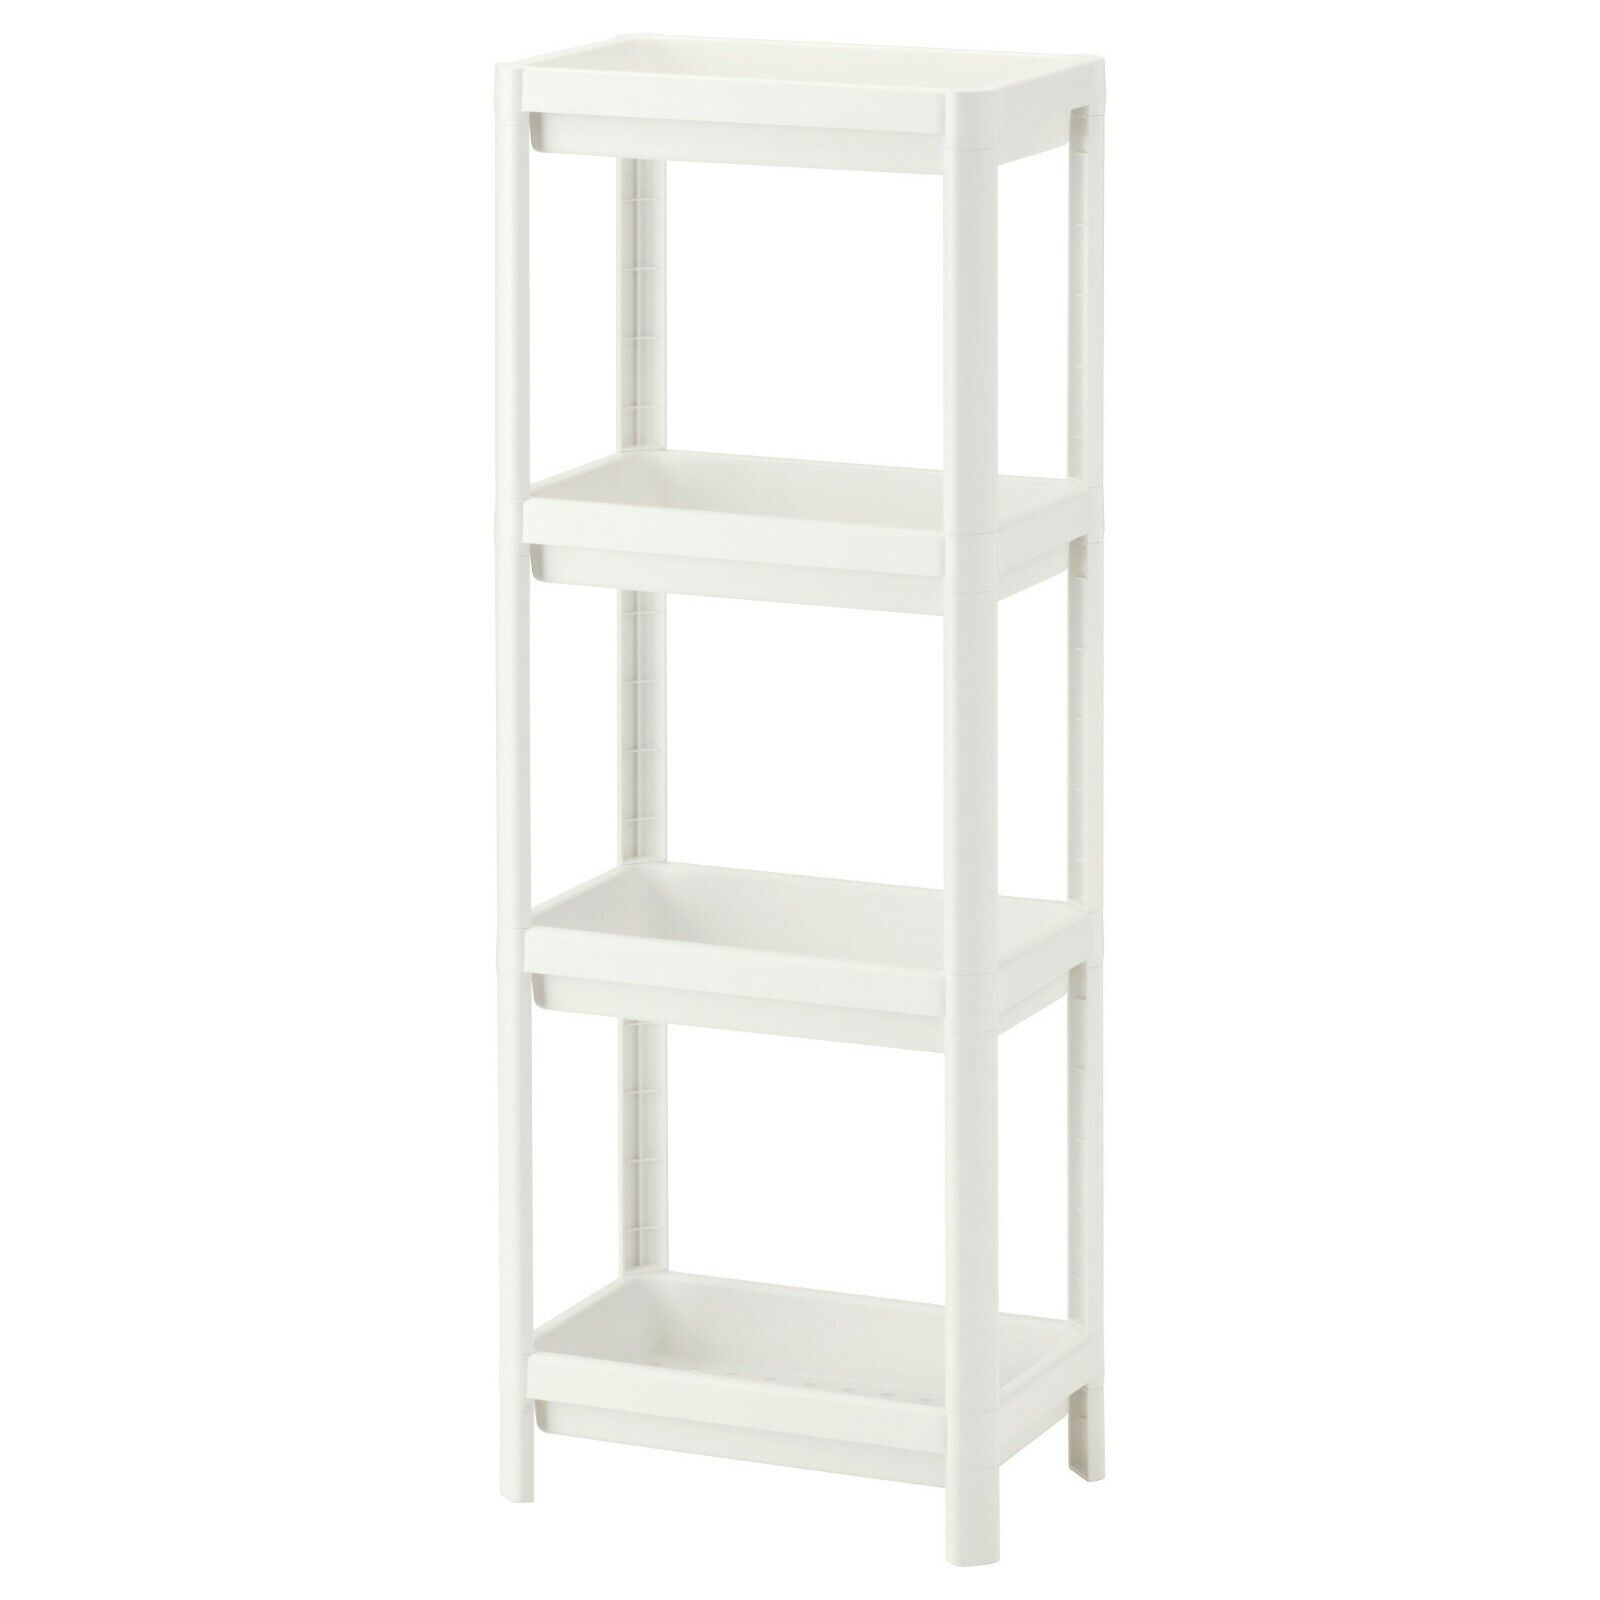 Ikea Vesken Ikea Vesken 4 Tier Bathroom Shelf Unit Small Storage White